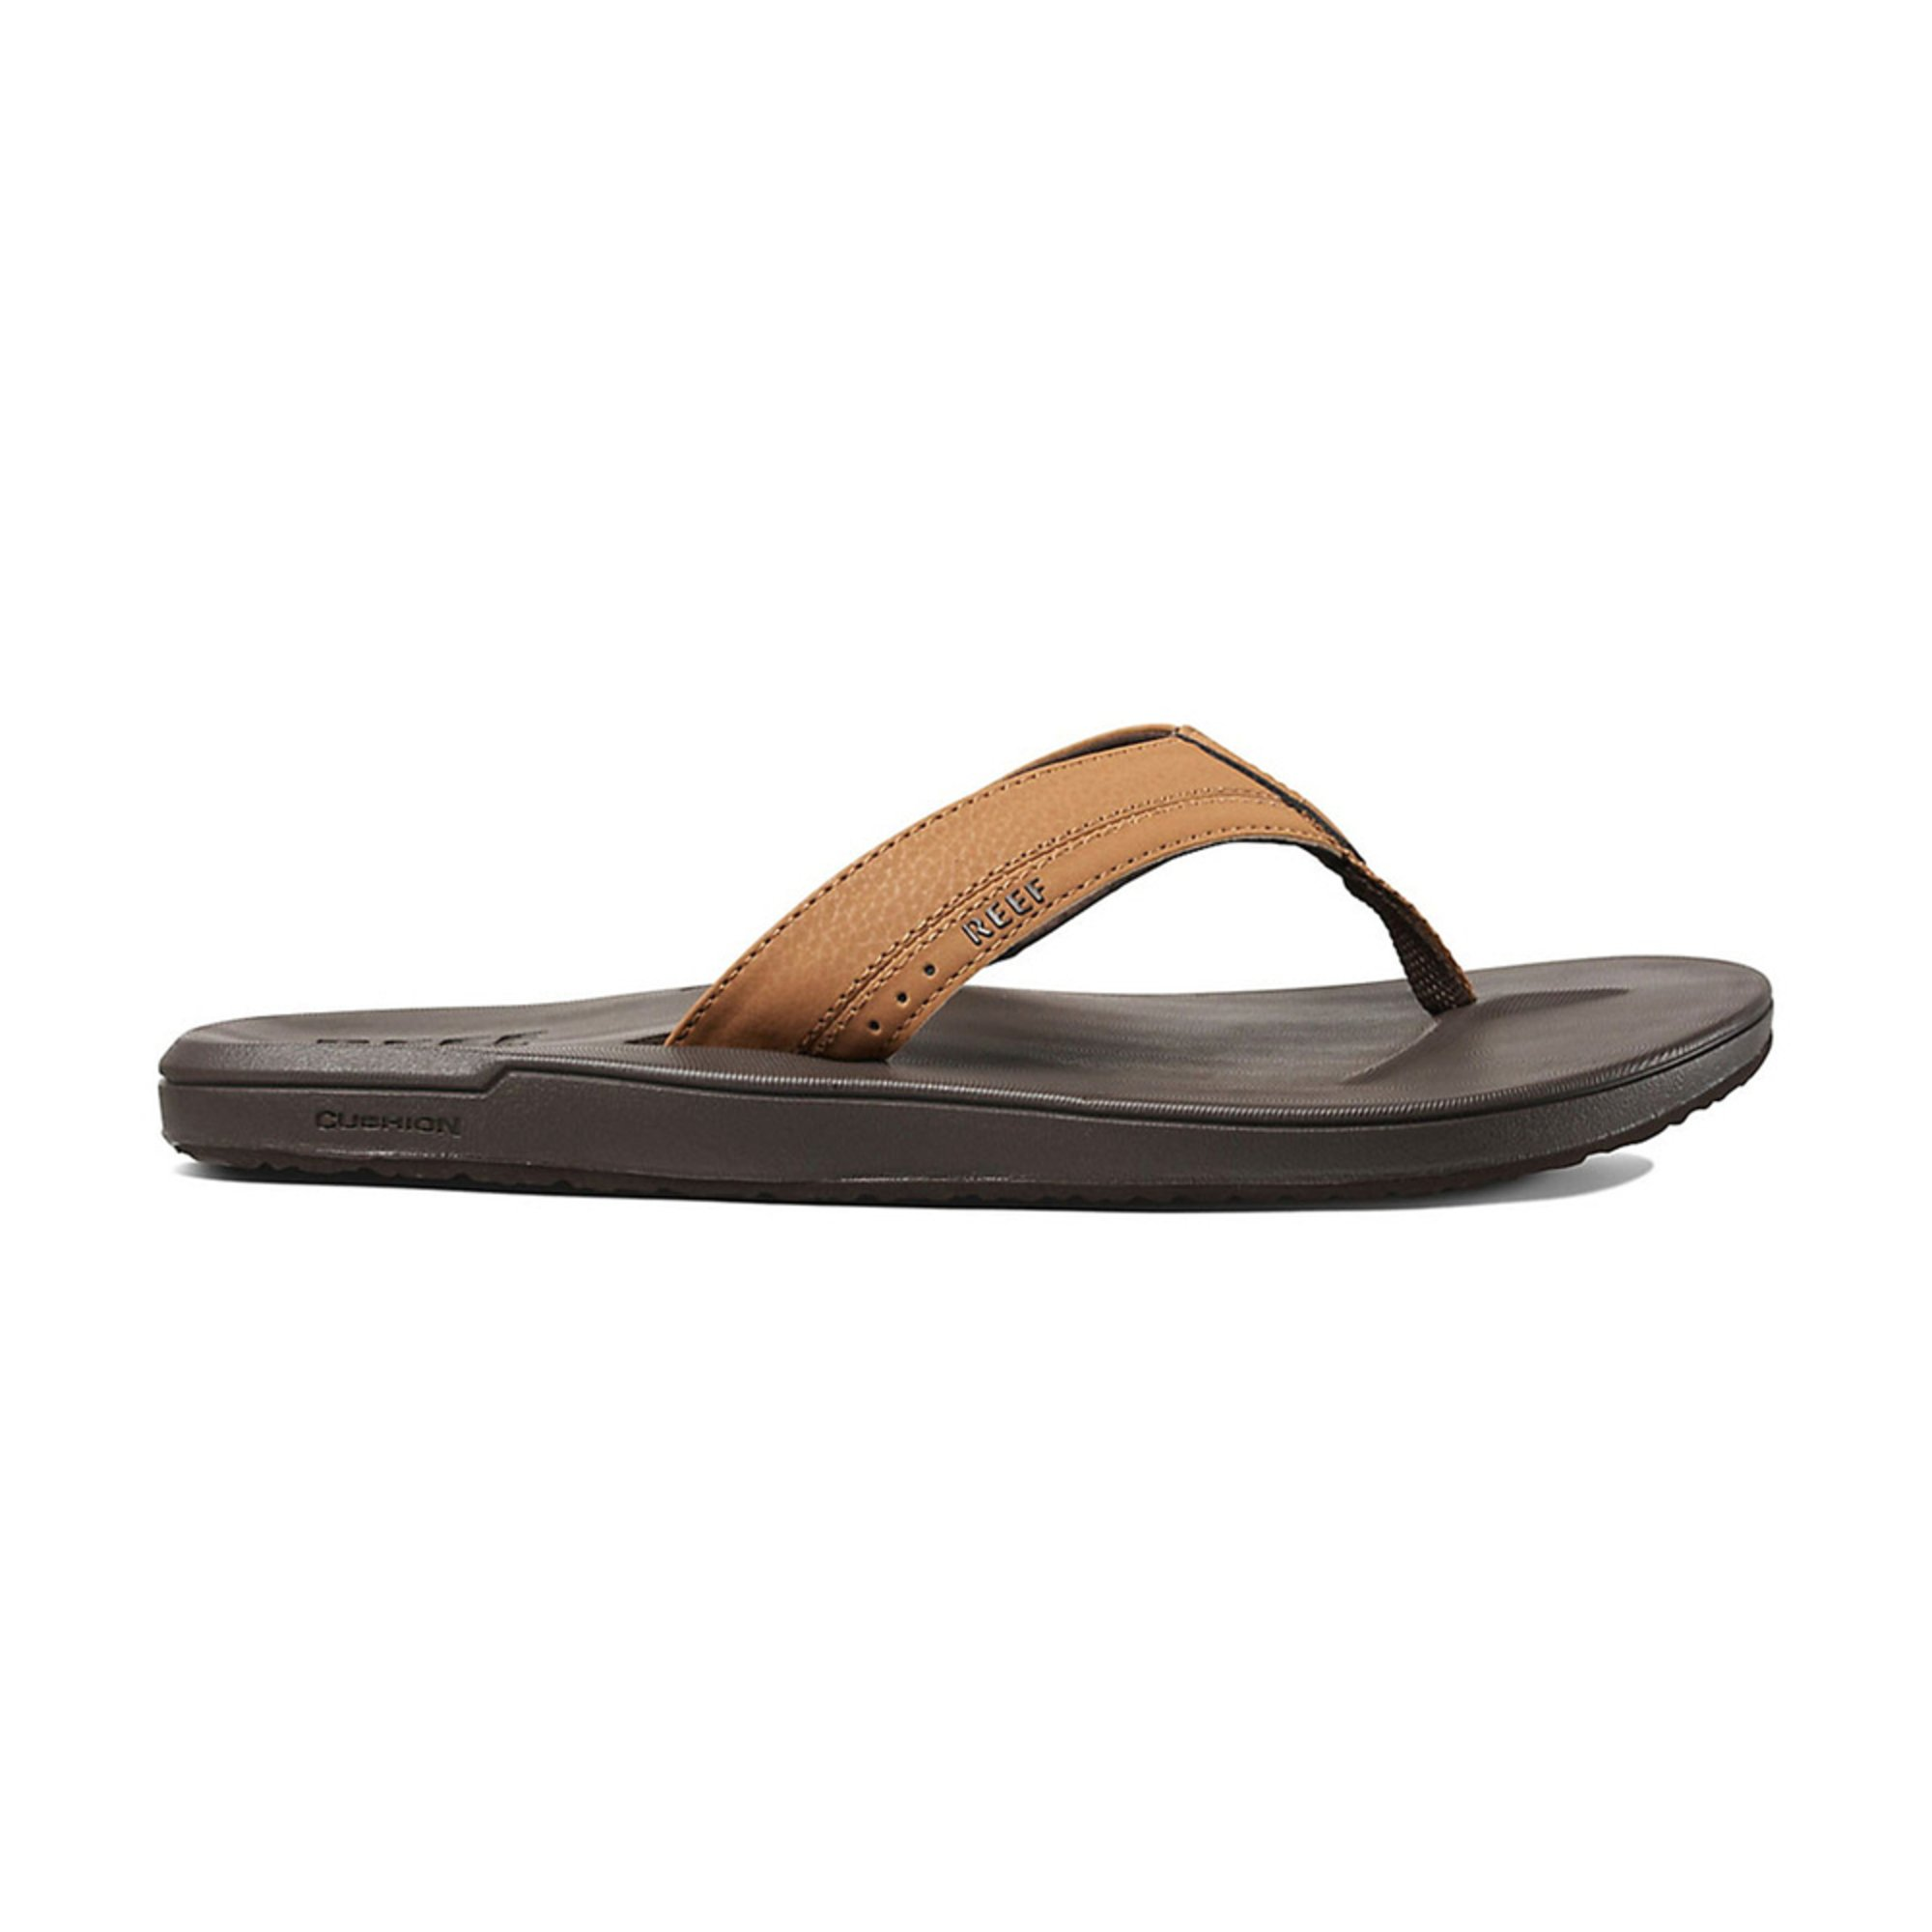 76997babdb00 Reef. Reef Men s Contoured Cushion Sandal